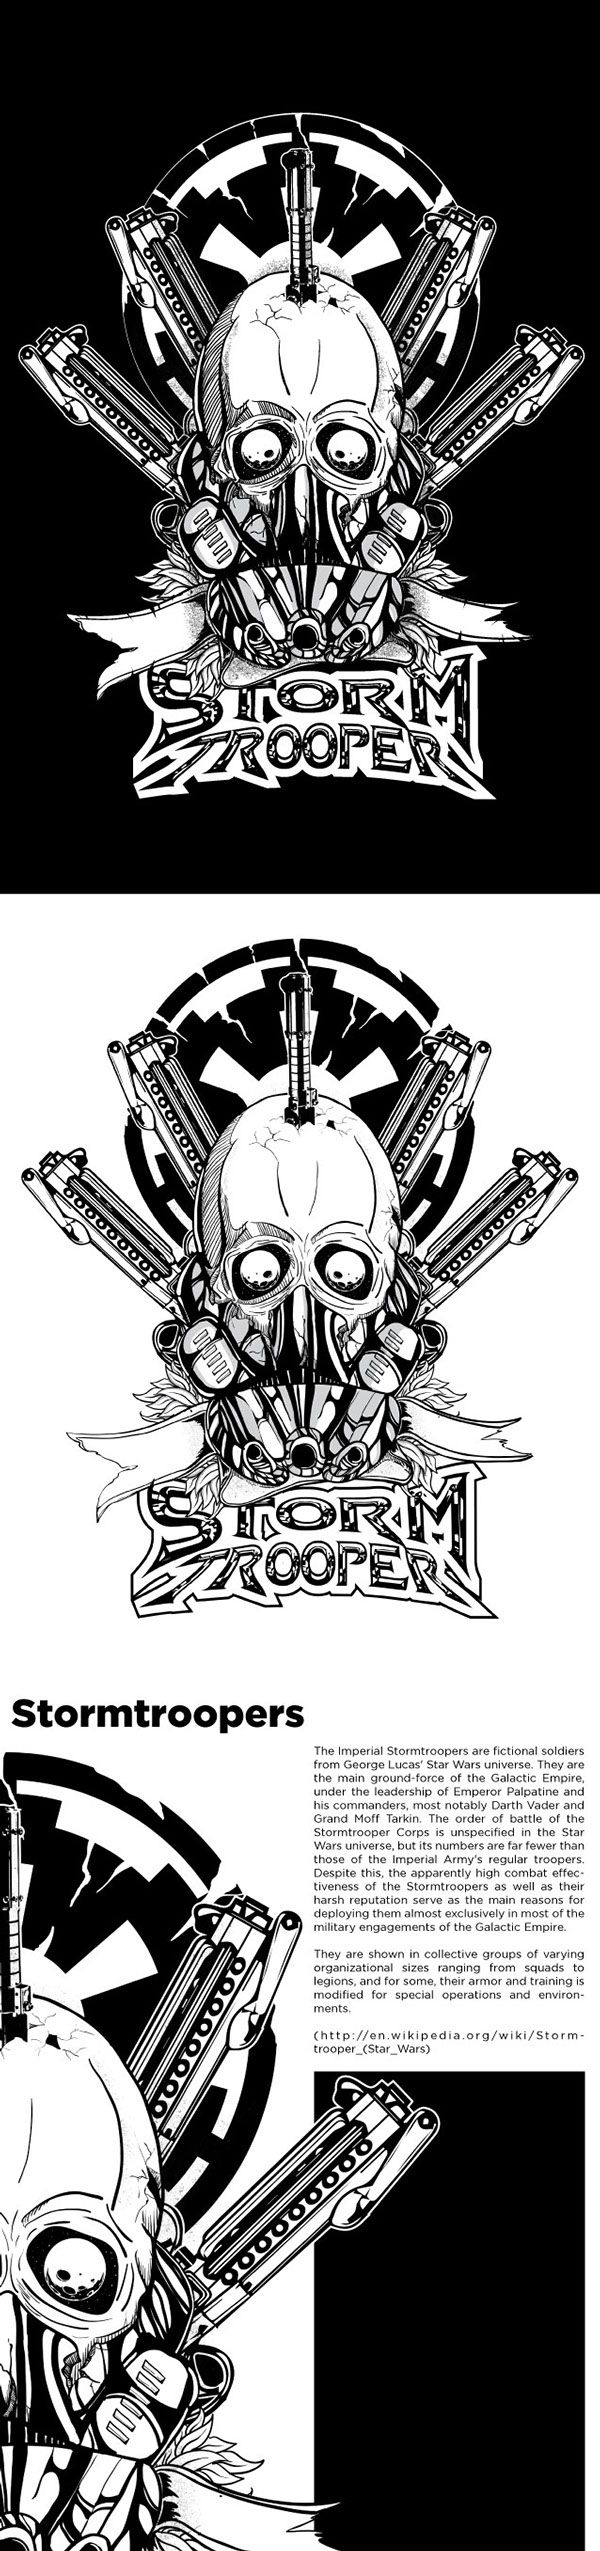 fighting spirit stormtroopers on Behance